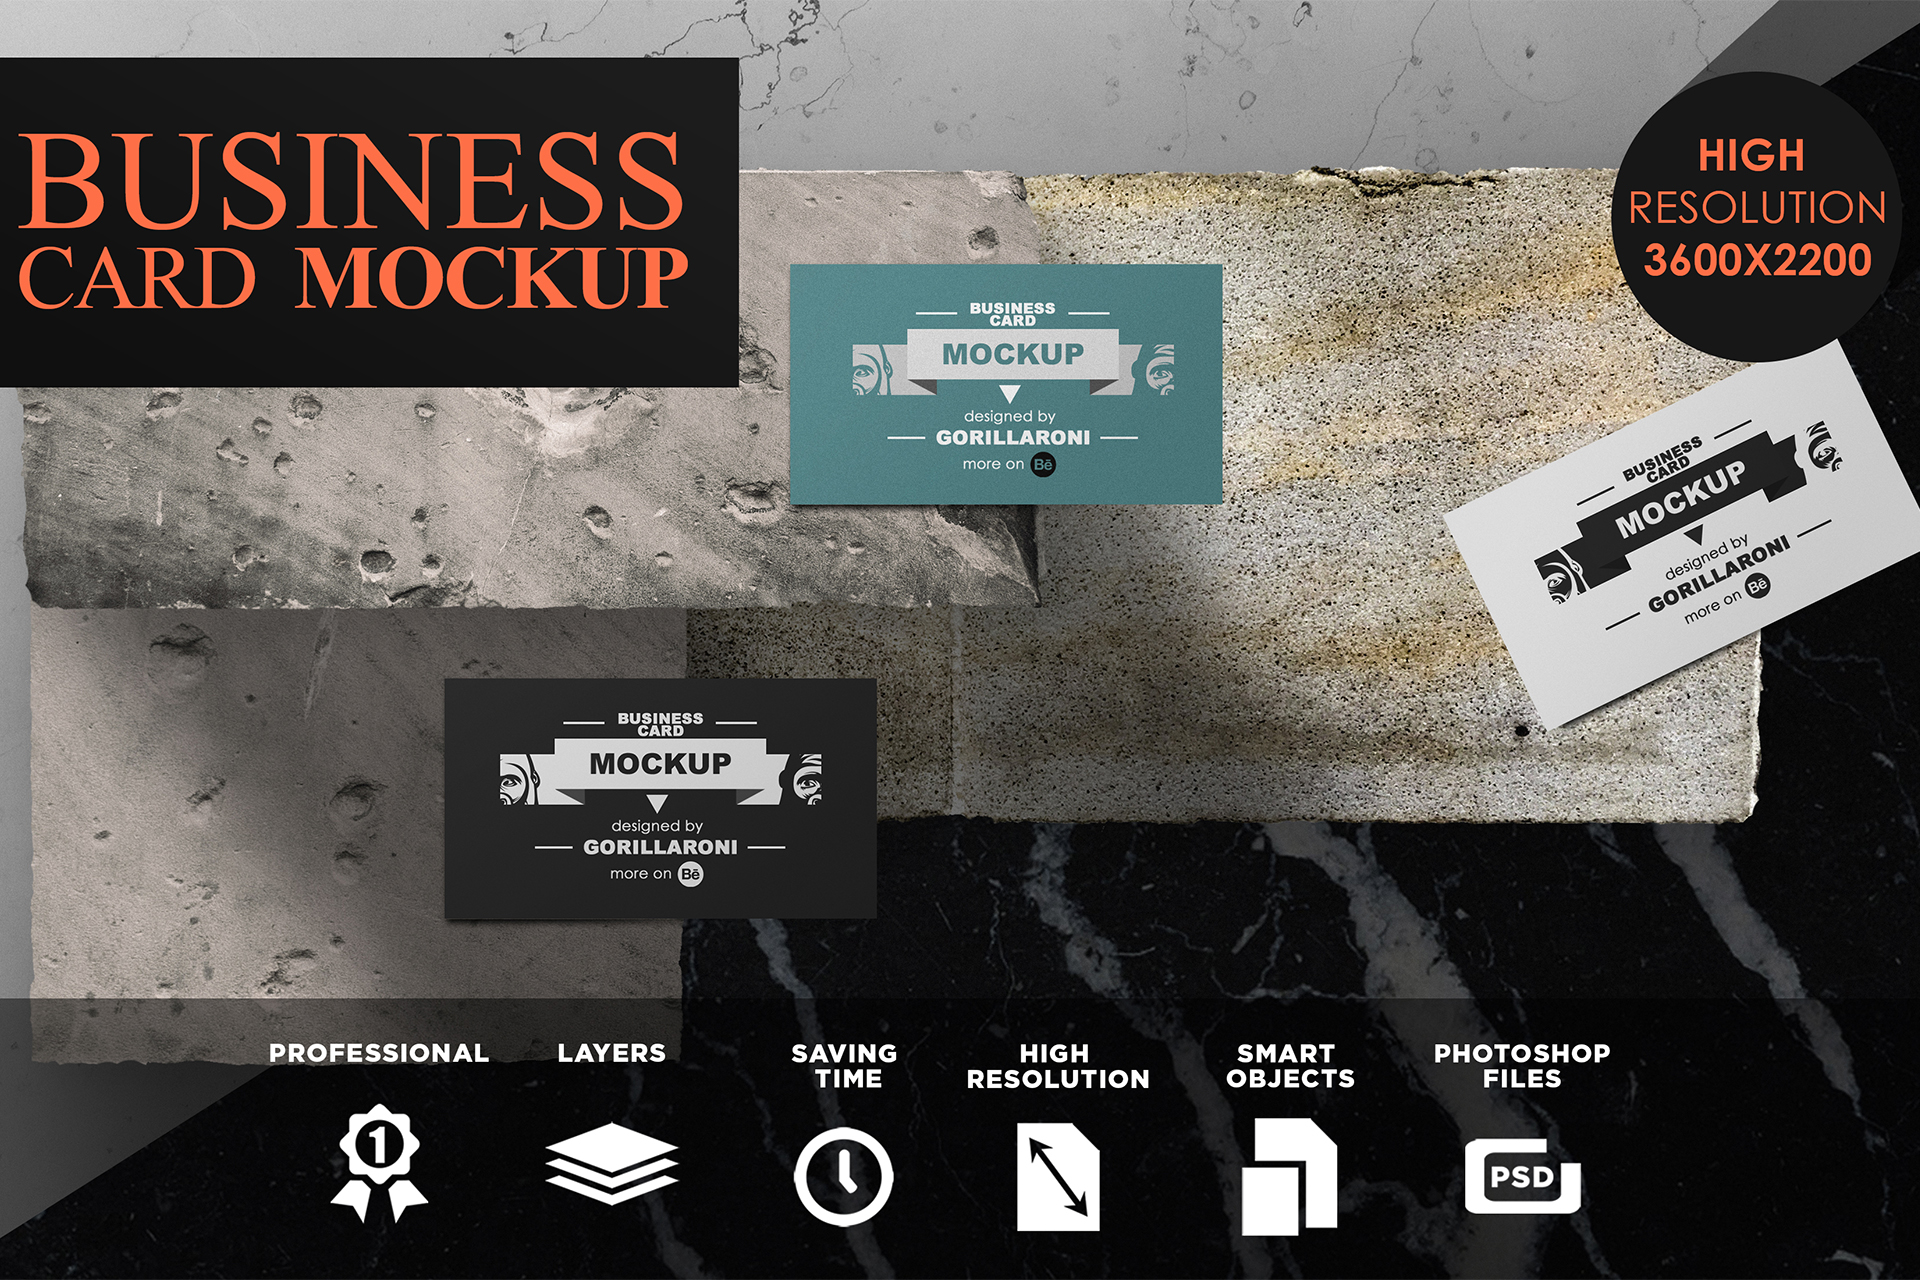 Business card mockup vol 40 by gorilla design bundles business card mockup vol 40 by gorillaroni example image 1 reheart Gallery